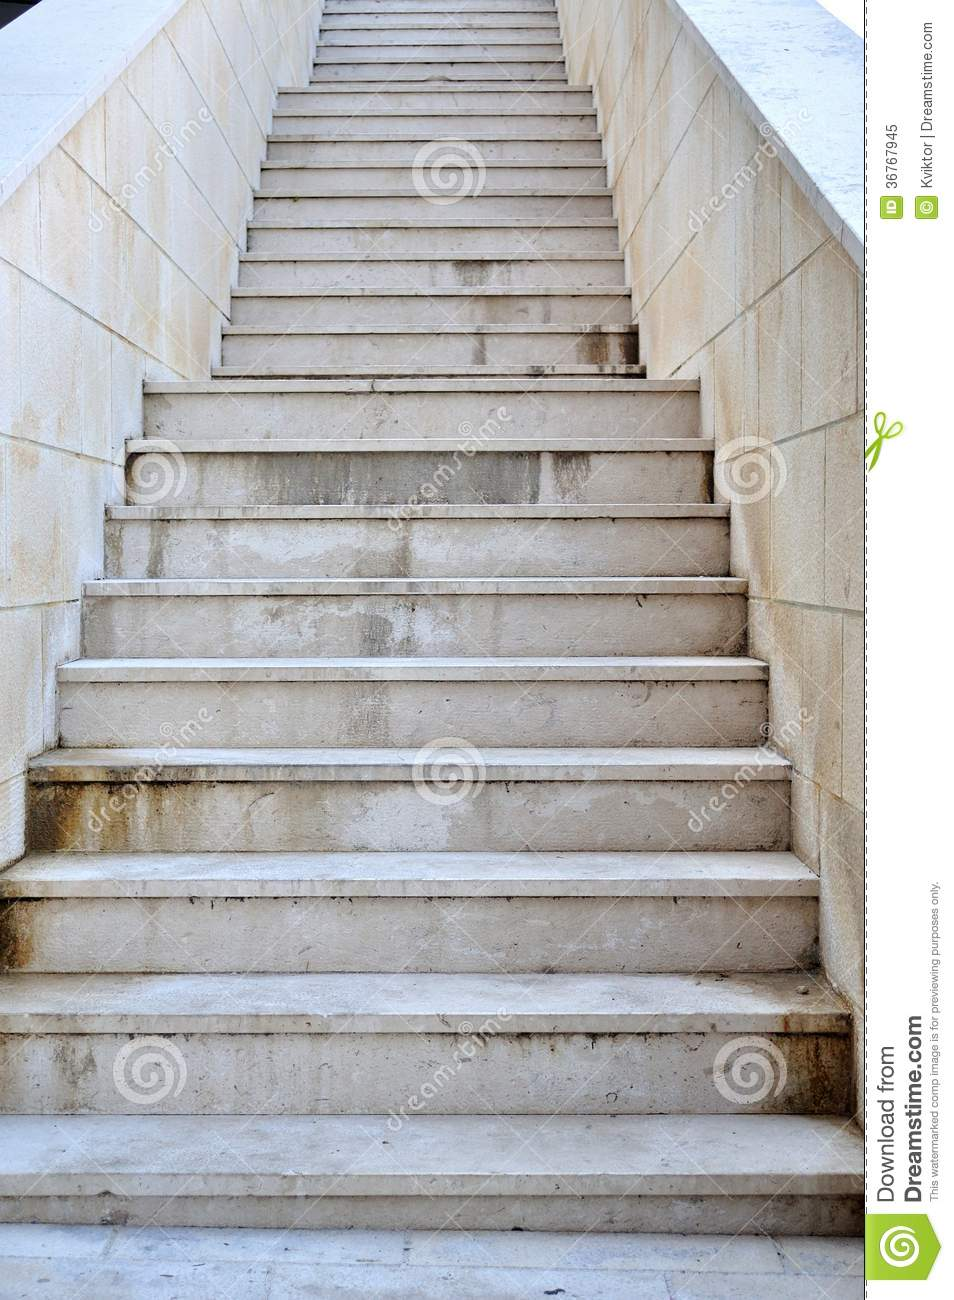 Long stairs with steps stock photo for Escaleras largas